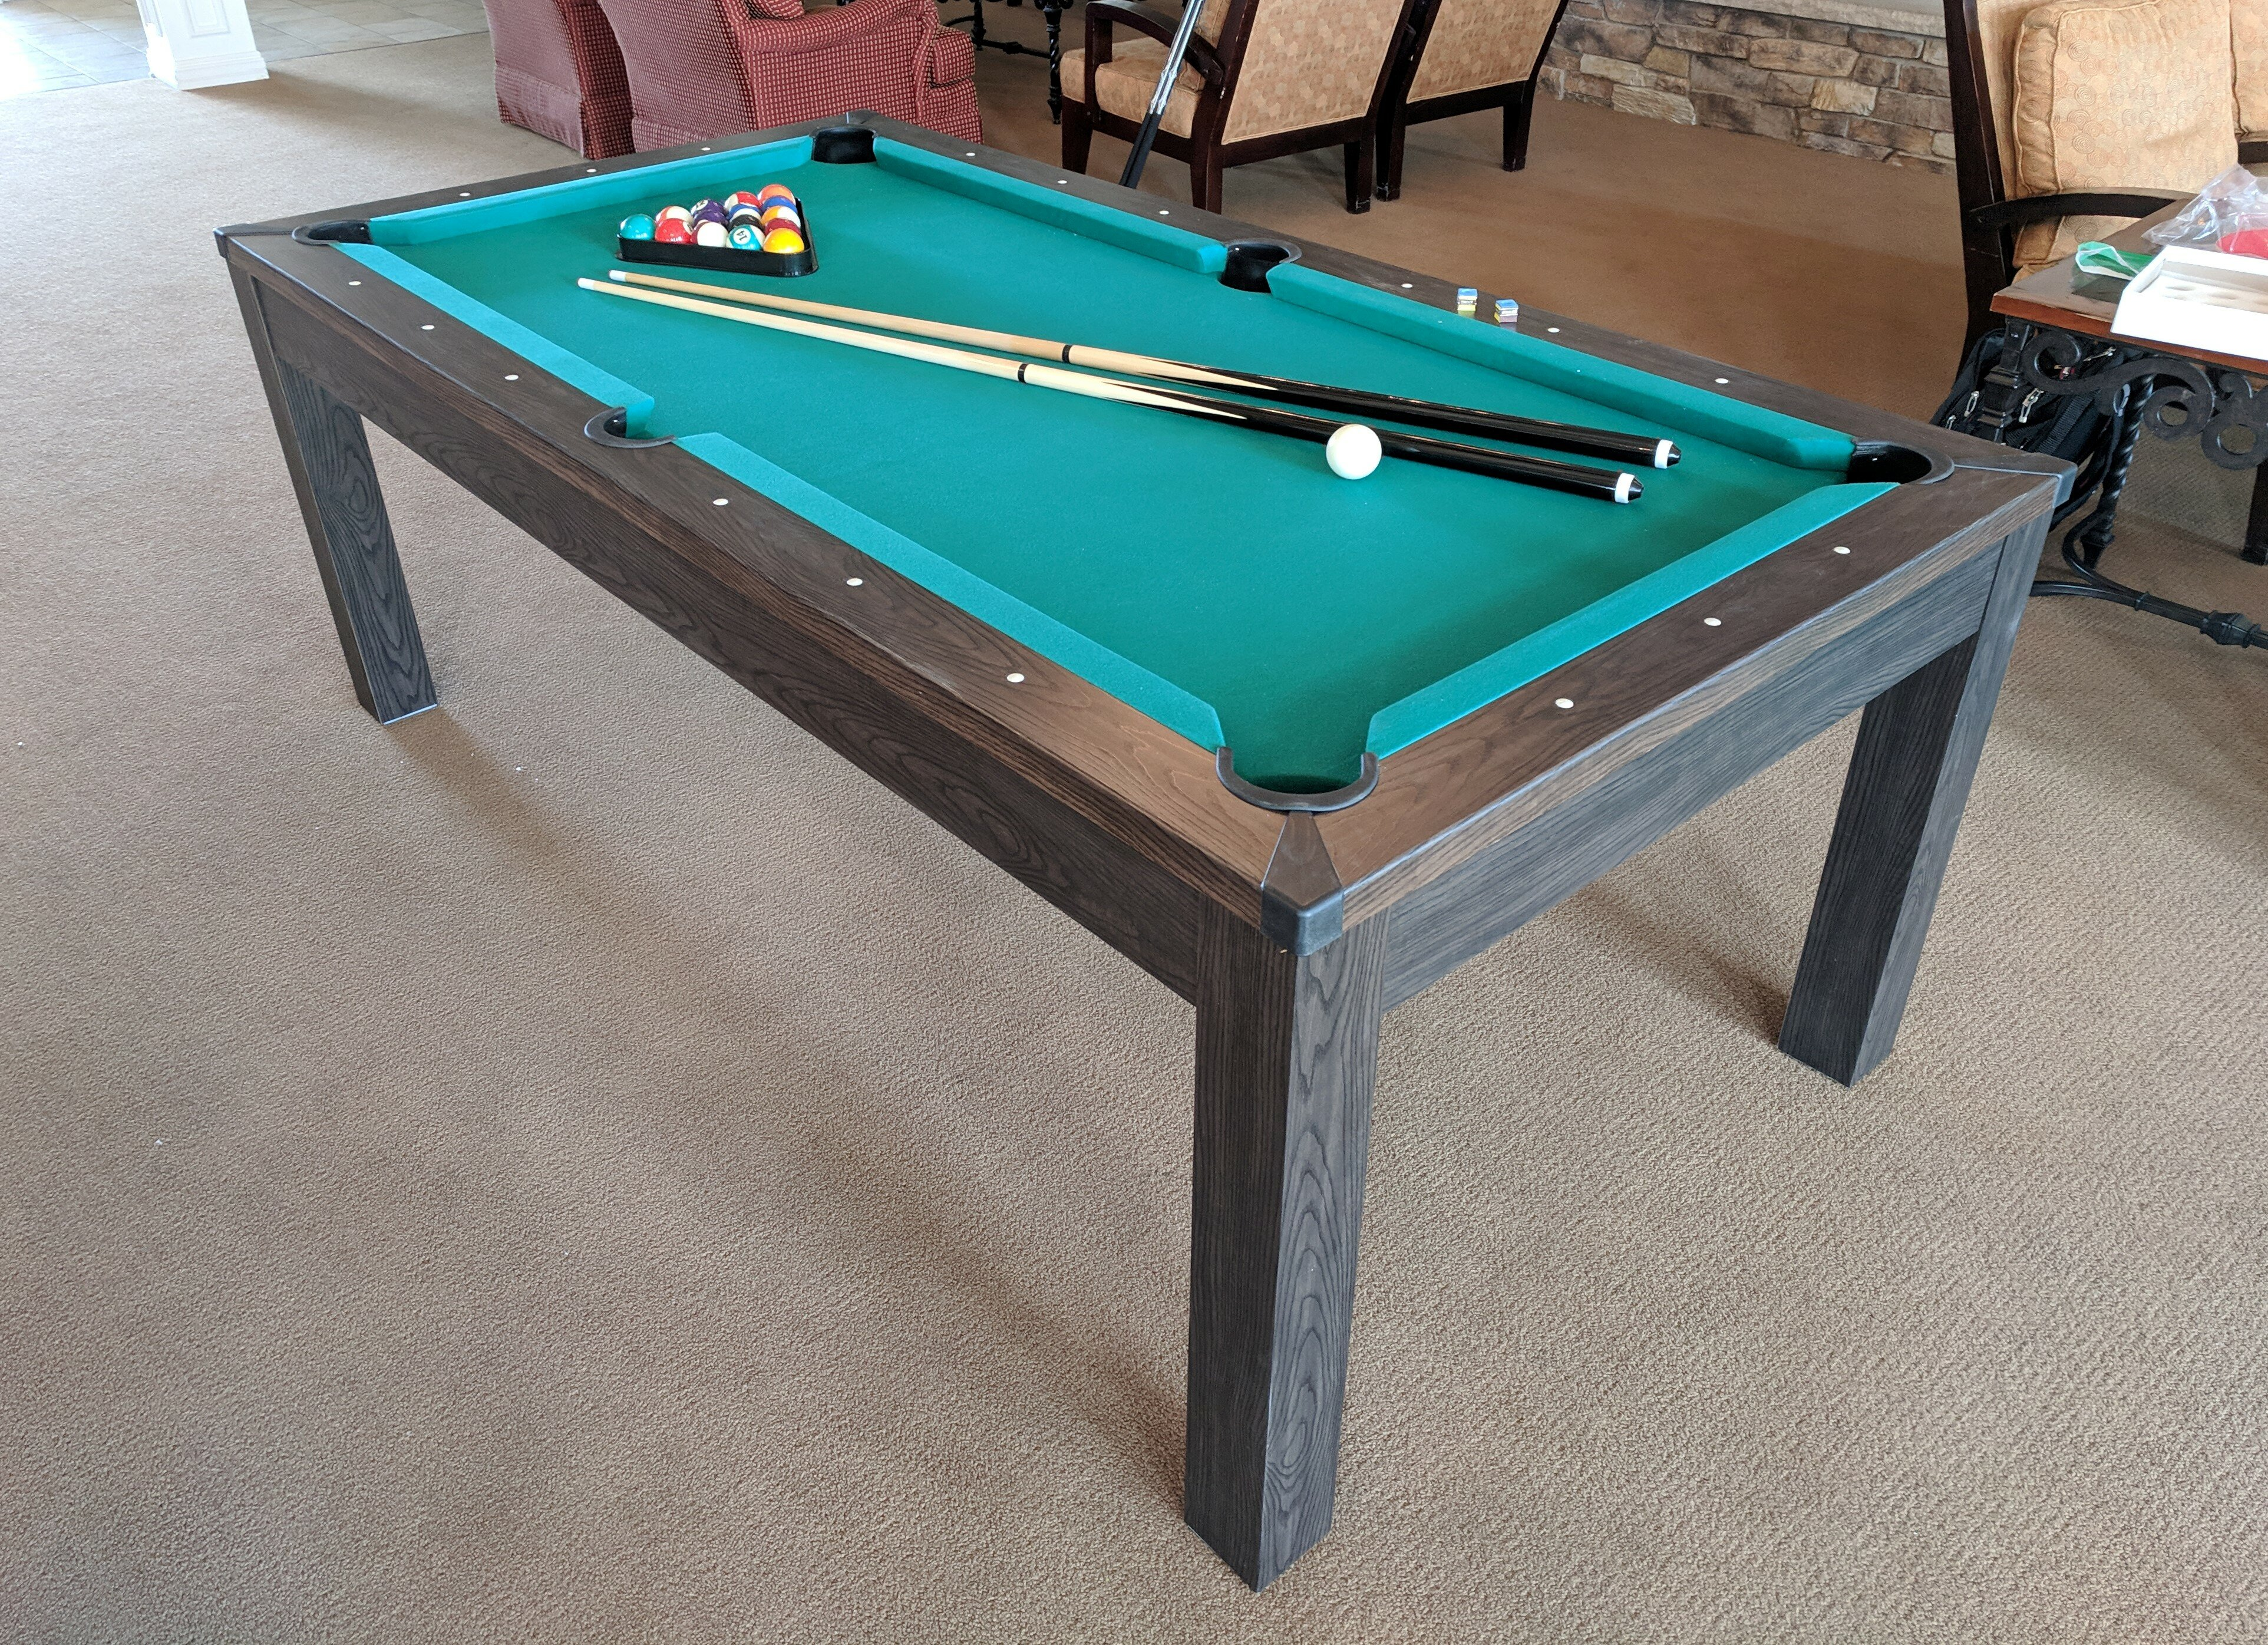 airzone play 3 in 1 7 multi game table wayfair exclusive w